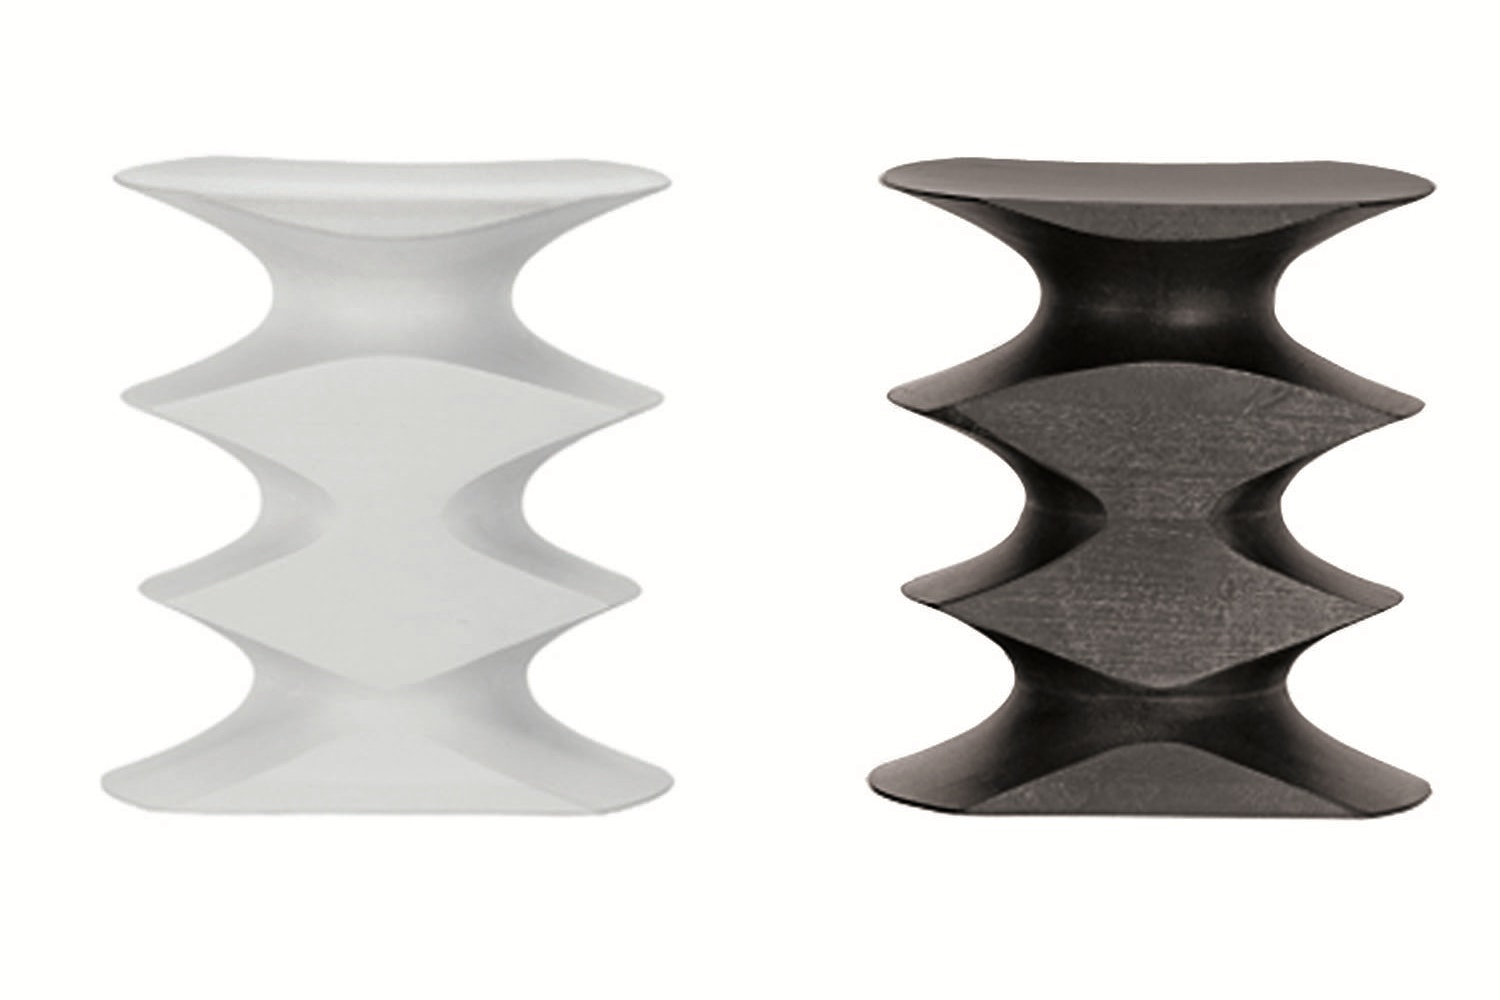 Hocker Stool by Jacques Herzog & Pierre de Meuron for Vitra